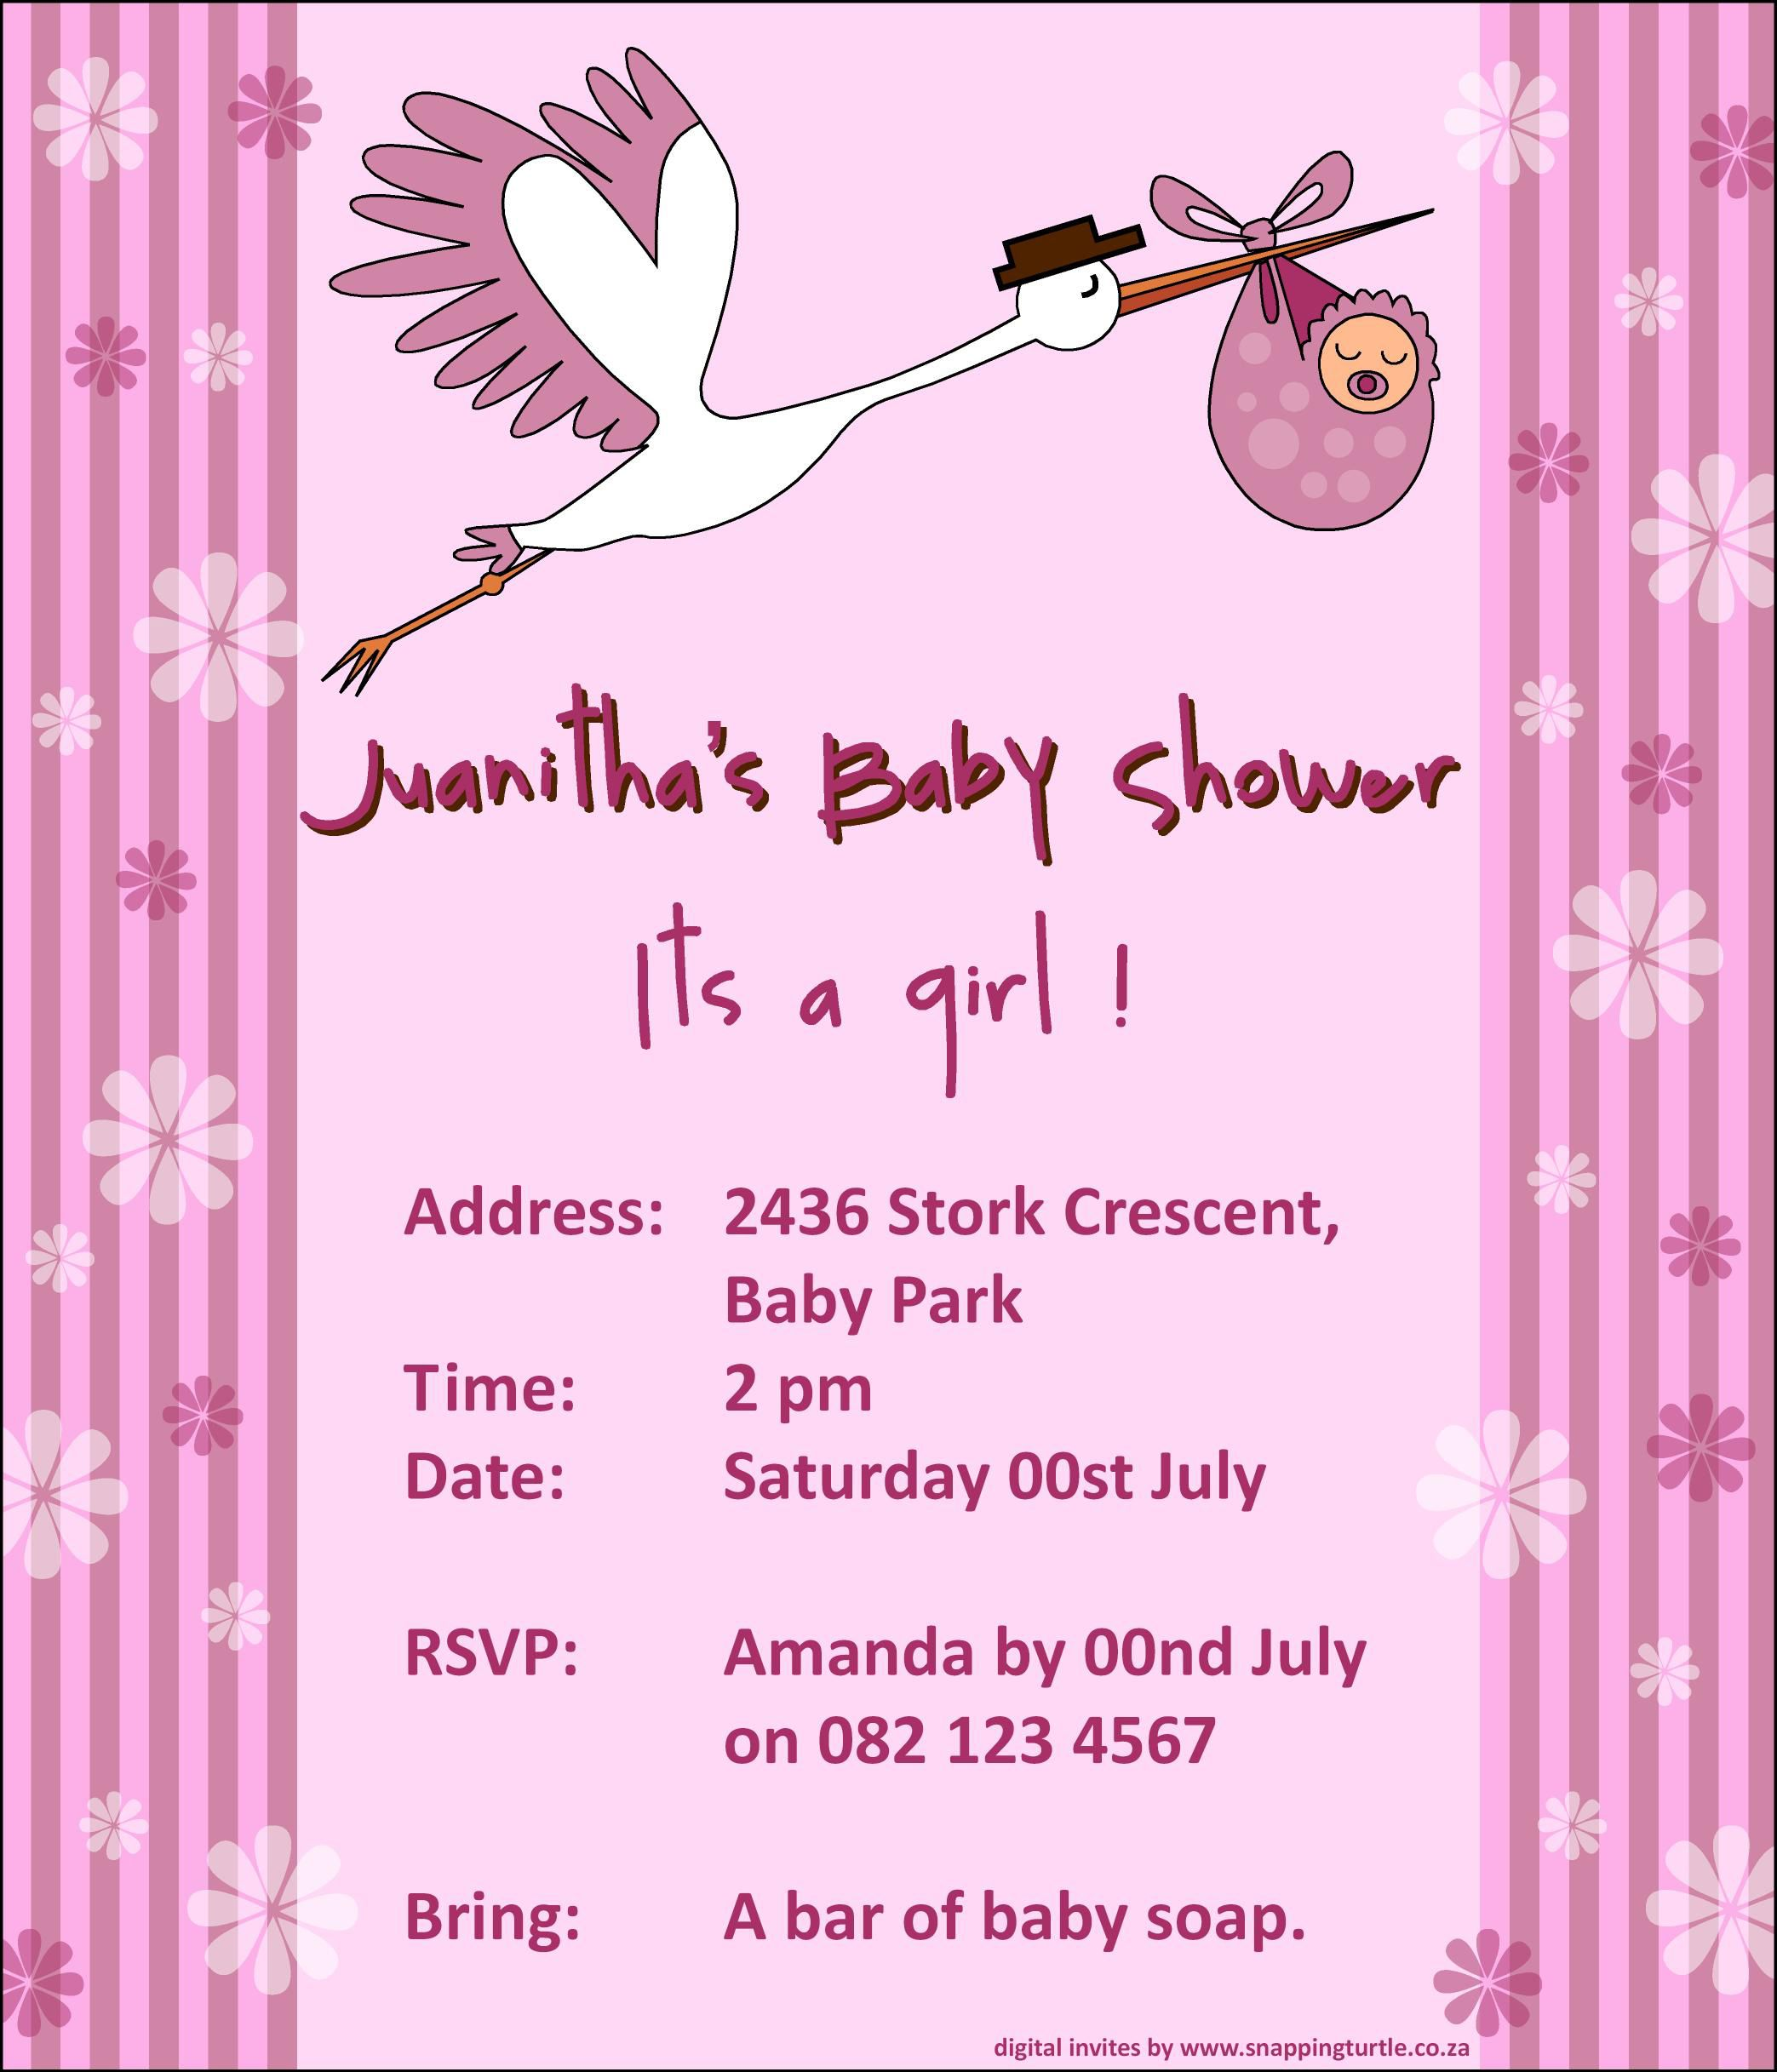 Collection Of Thousands Of Free Baby Shower Invitation From All Over The  World.  Free Online Baby Shower Invitations Templates